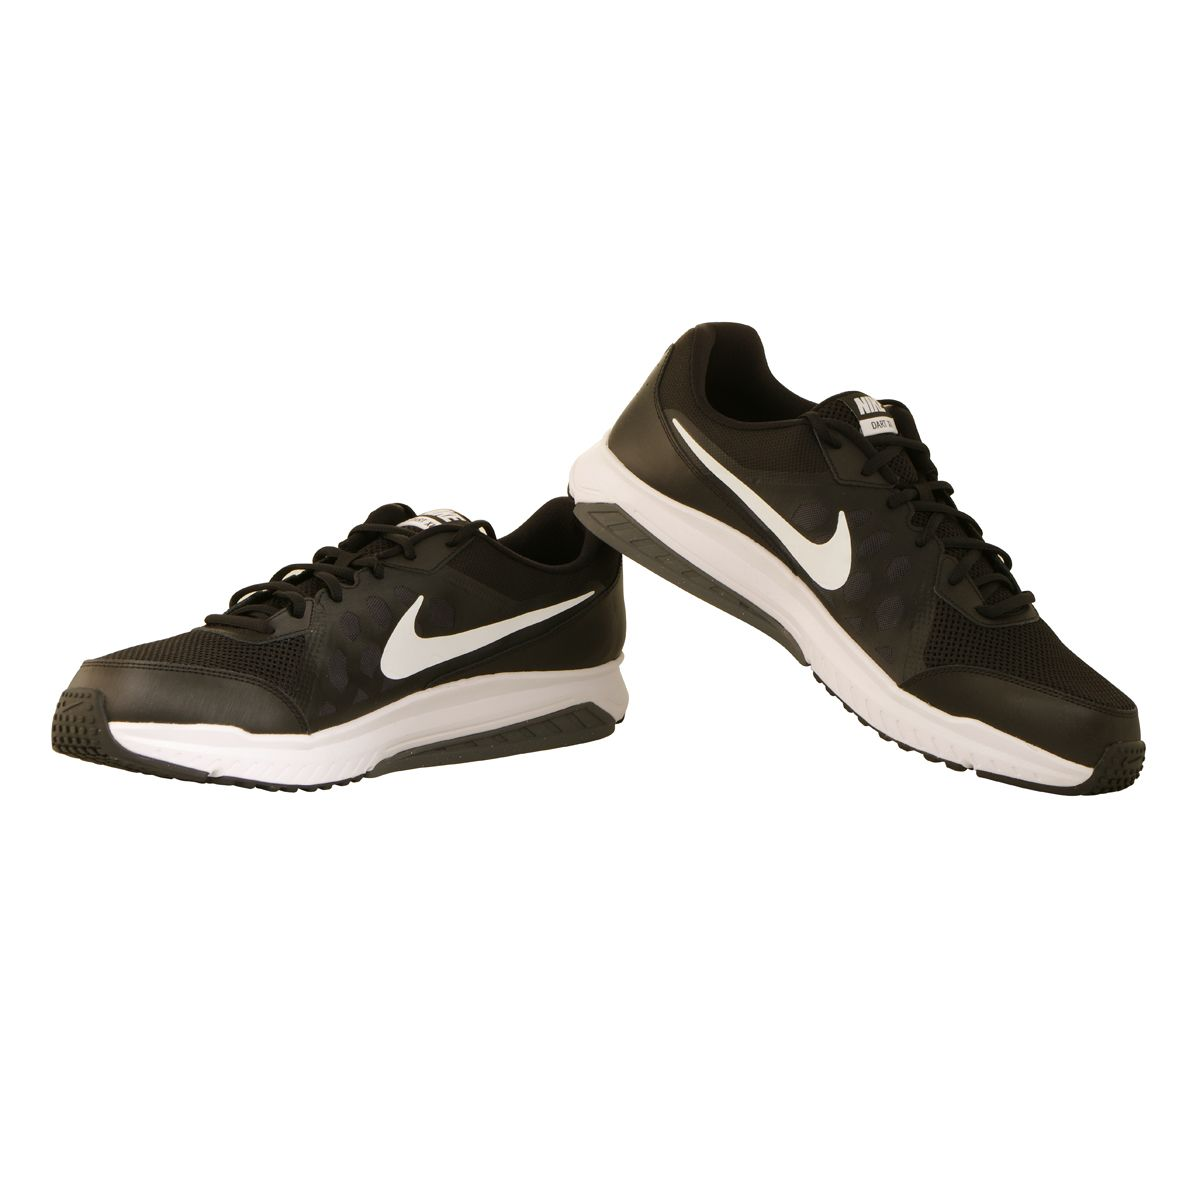 tailles chaussures nike homme. Black Bedroom Furniture Sets. Home Design Ideas